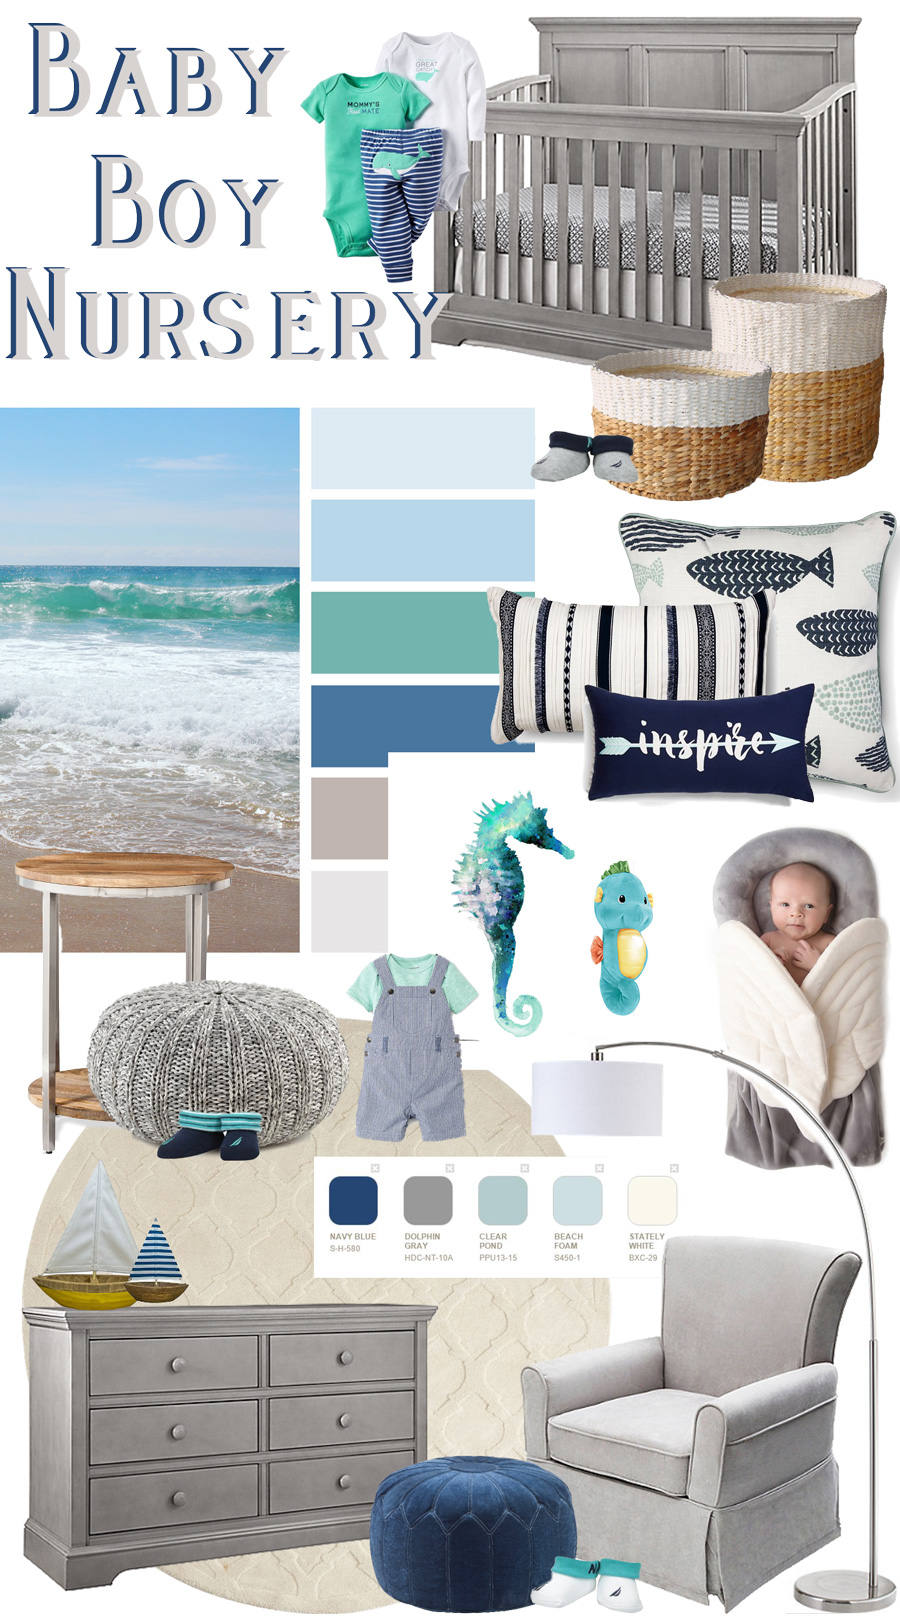 Baby-Boy-Nursery-Design-Inspiration-Nautical-Theme-with-Blue-Grey-Aqua